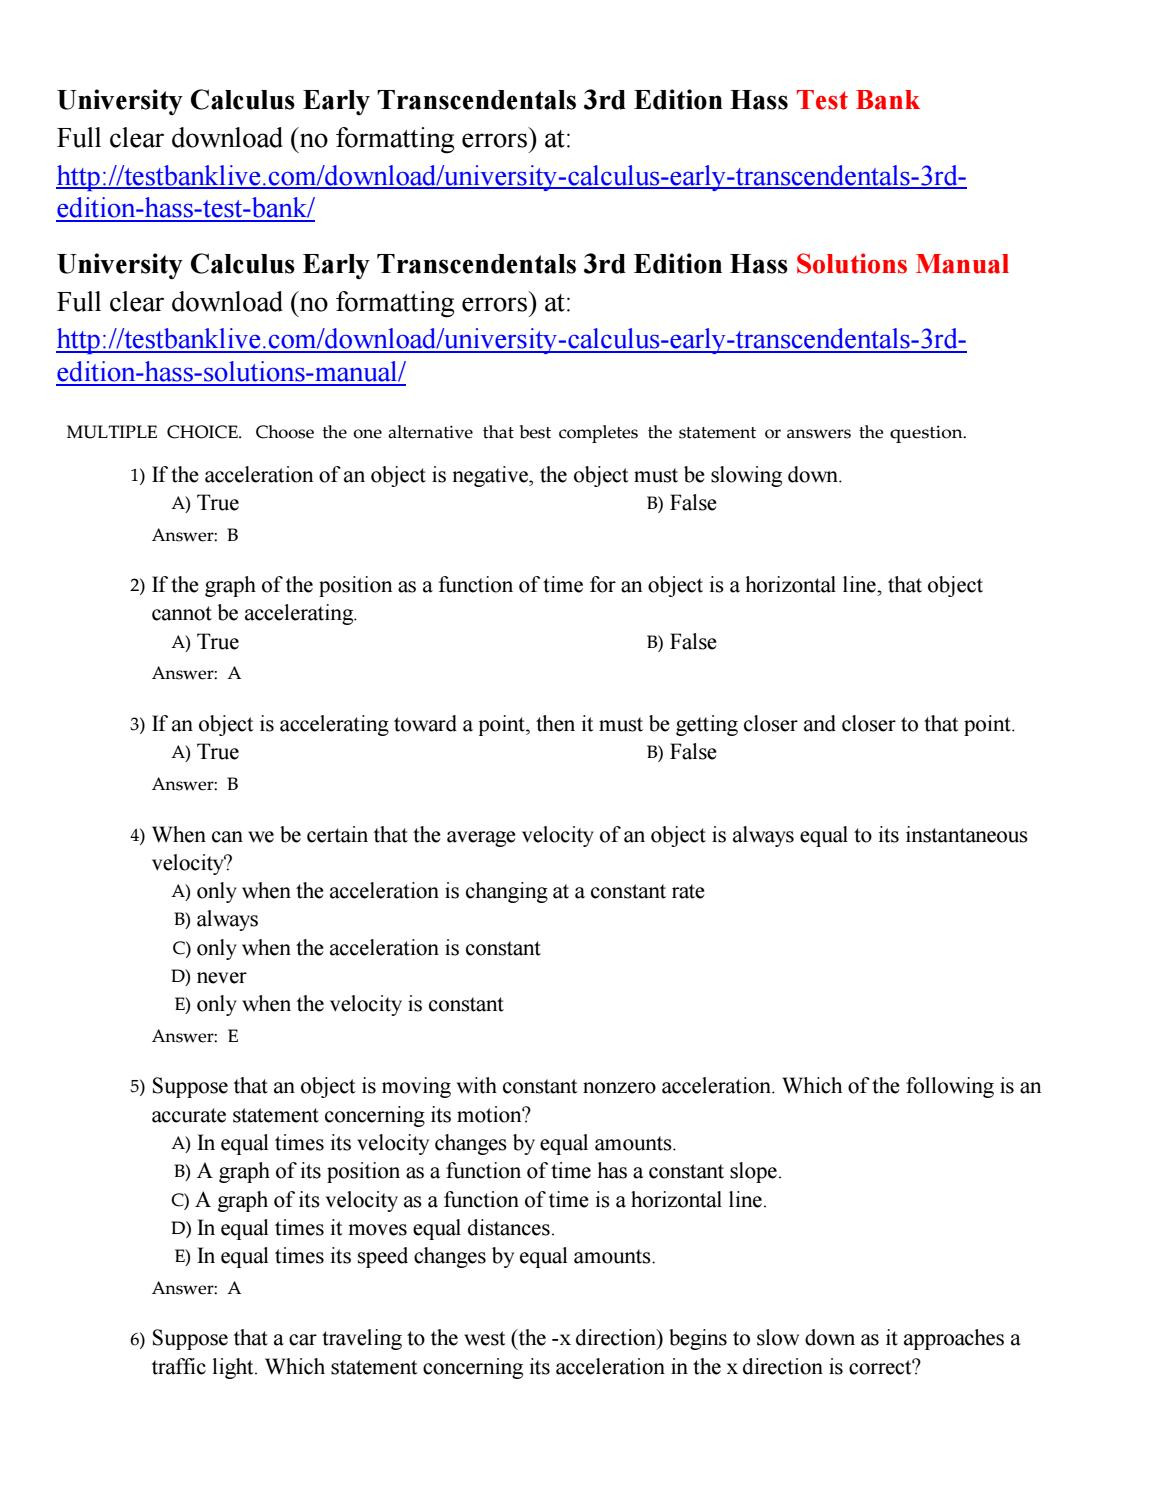 University Calculus Early Transcendentals 3rd Edition Pdf Answers